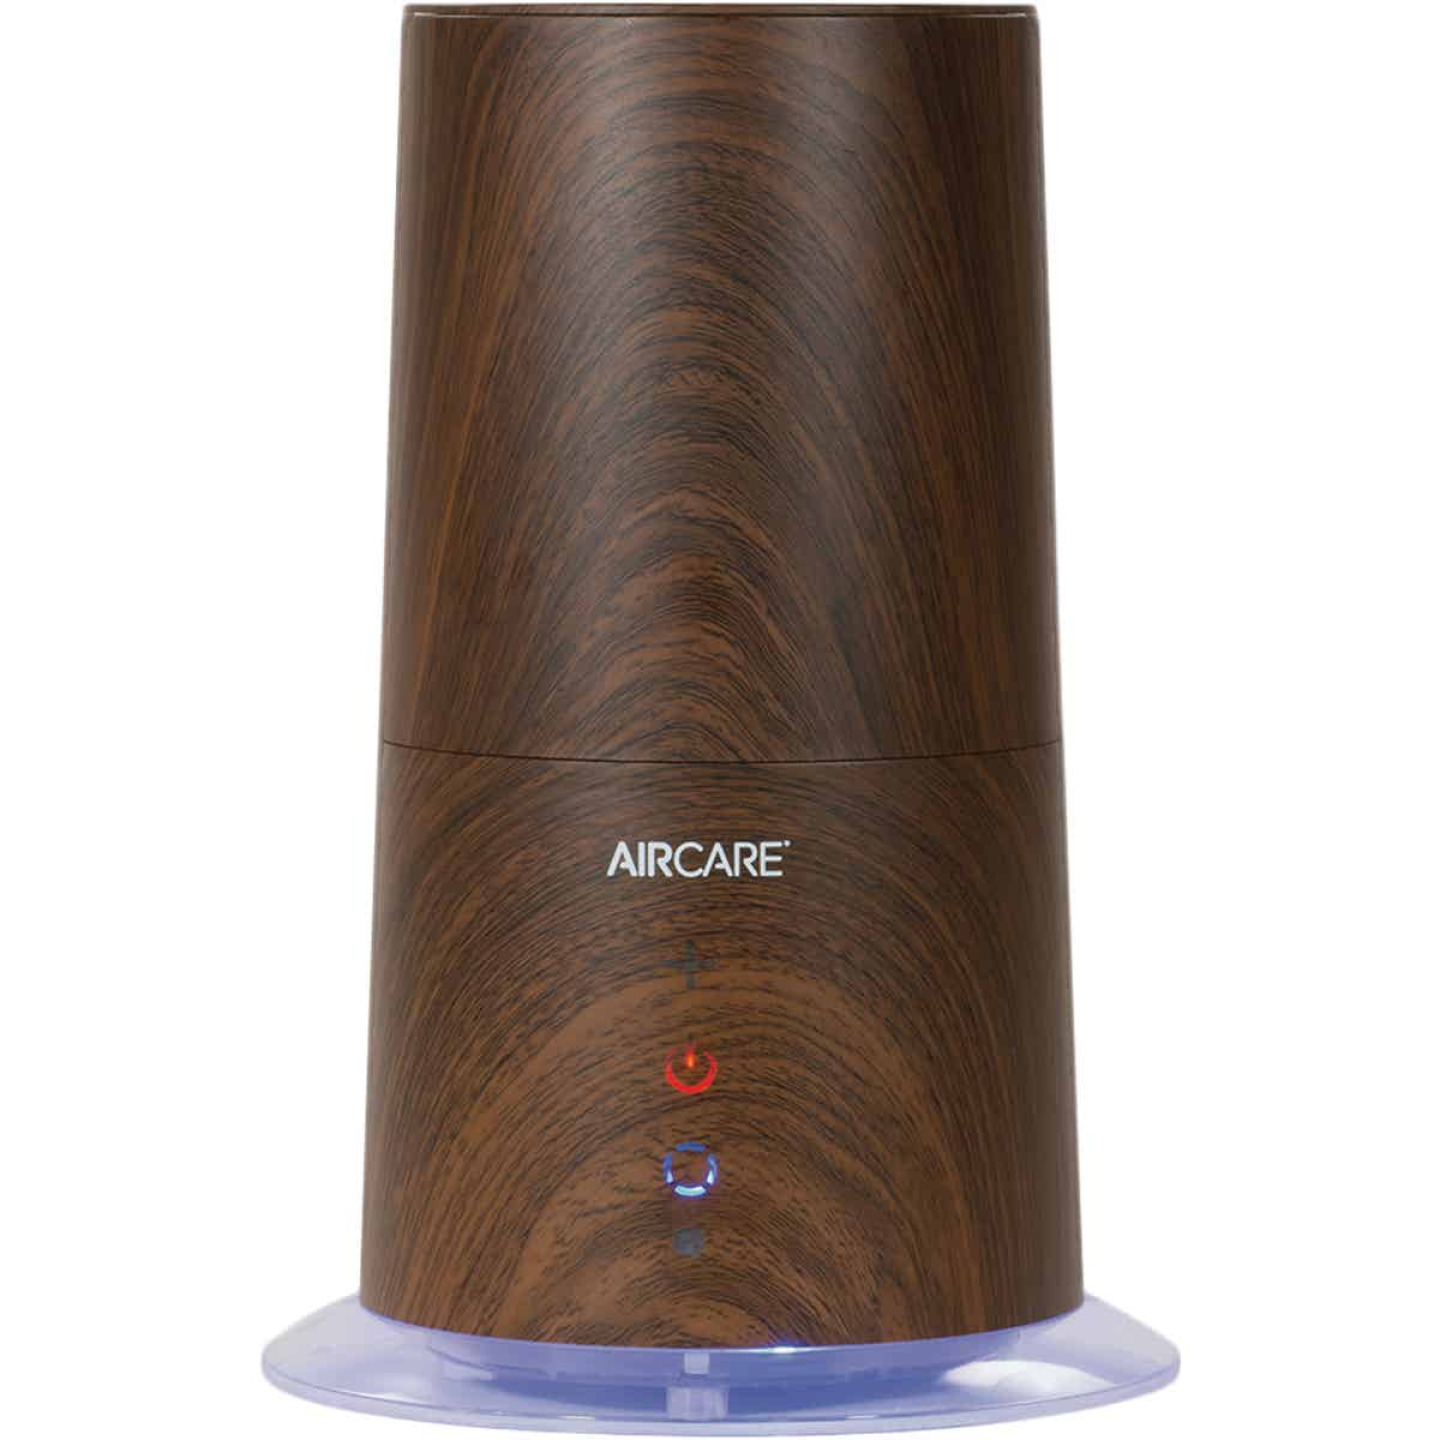 AirCare Mesa 0.8 Gal. Capacity 750 Sq. Ft. Warm/Cool Mist Ultrasonic Humidifier Image 1